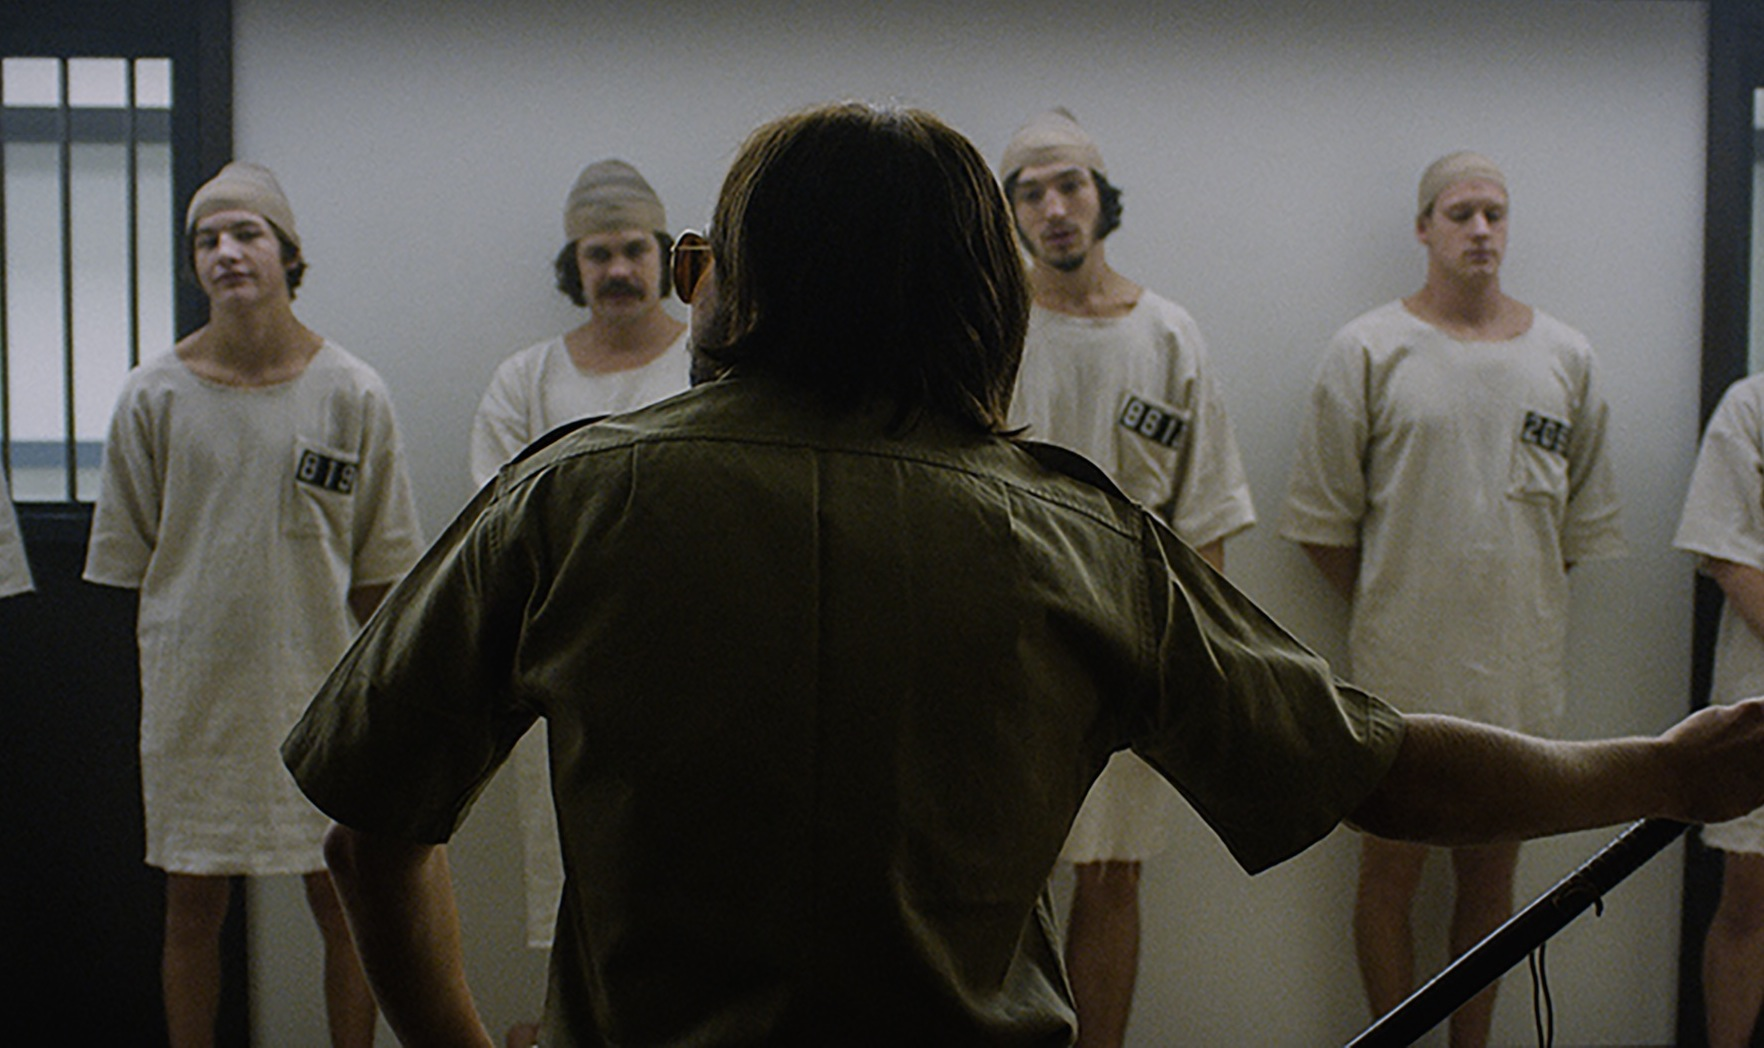 stanford prison experiment review In 1971, students at stanford university were divided into guards and prisoners in  a mock jail, and quickly spiralled into sadism and.